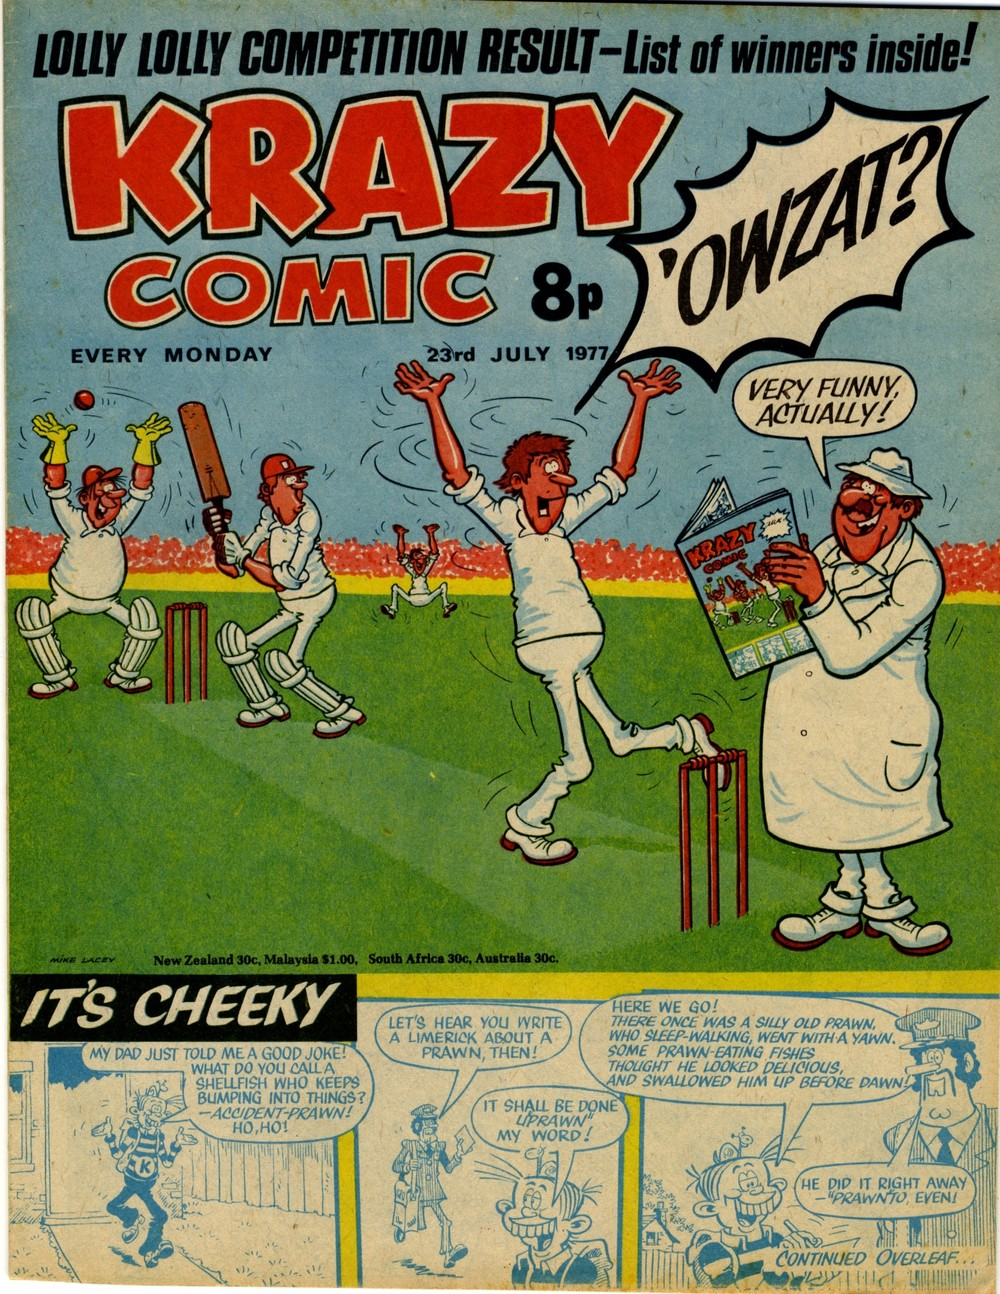 Cover artwork: Mike Lacey ('Owzat?) and Frank McDiarmid (It's Cheeky)